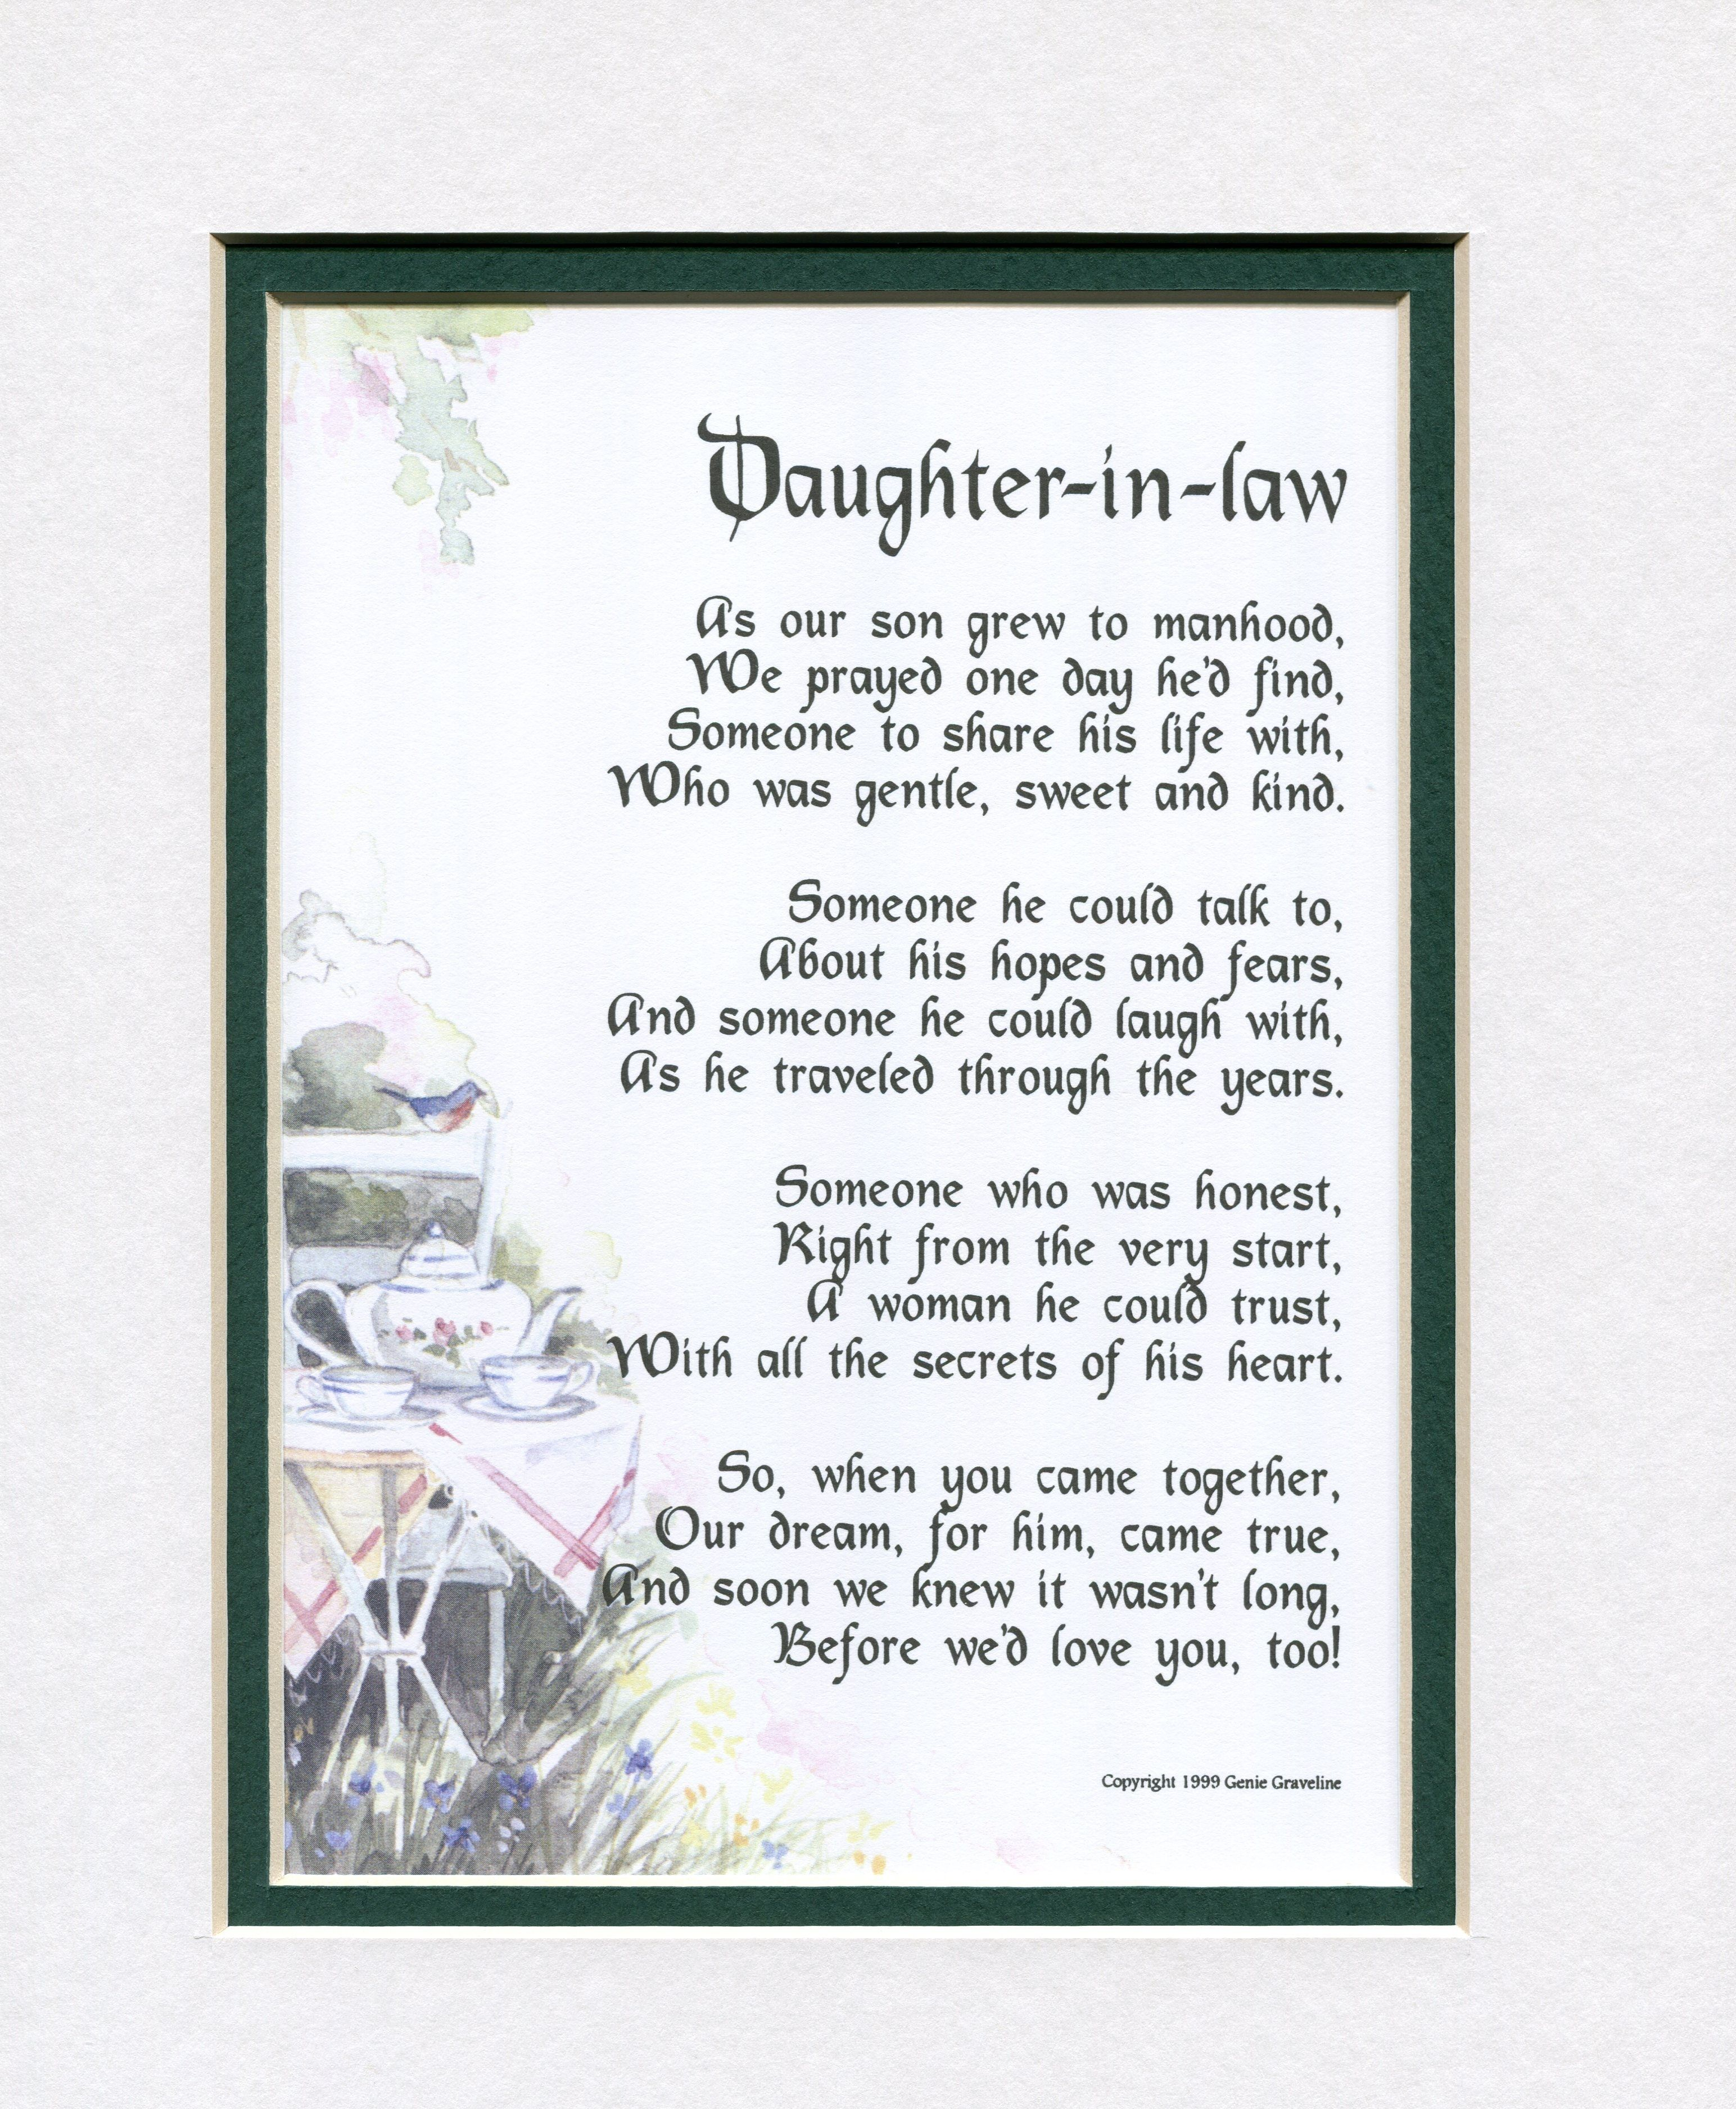 Future Daughter In Law Poems : future, daughter, poems, Daughter, Gifts,, Birthday, Wedding, Poems